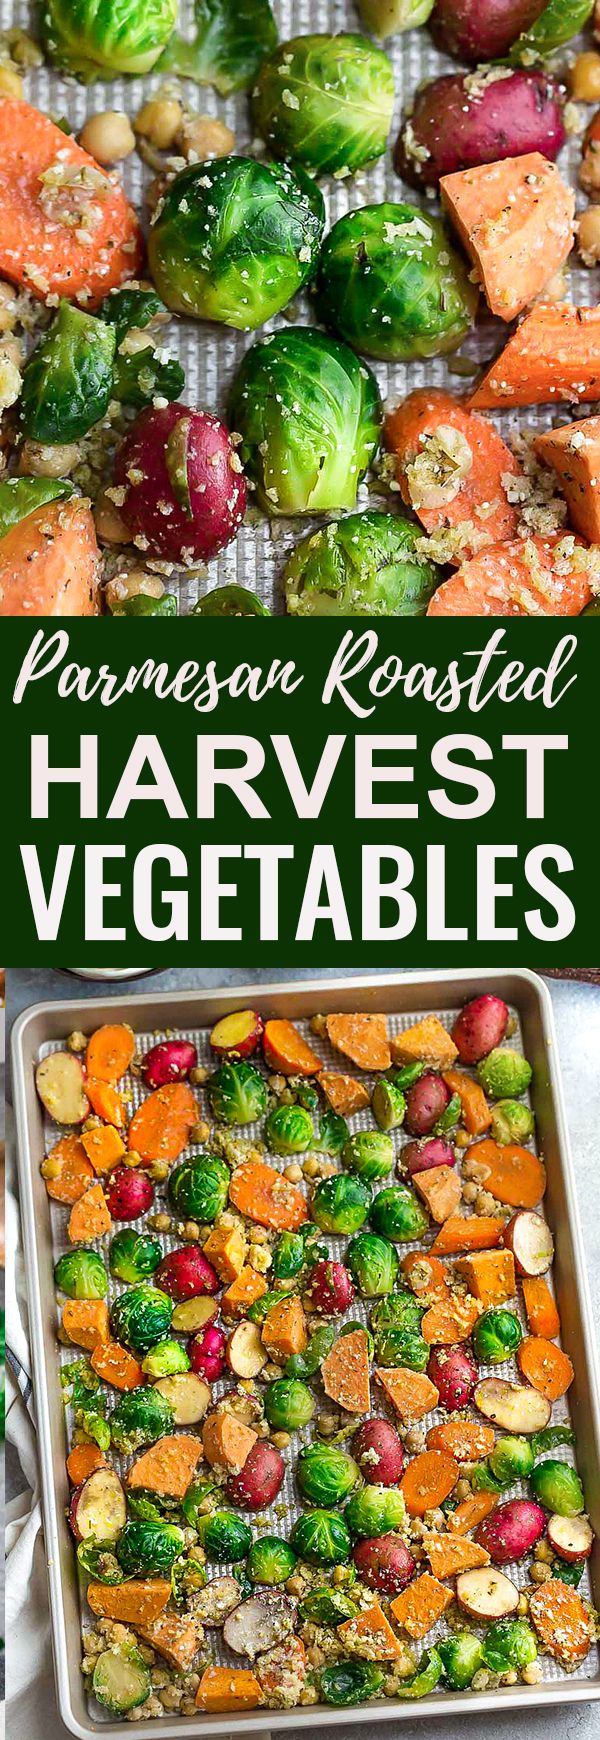 One Pan Roasted Harvest Vegetables - made with carrots, sweet potatoes, Brussels sprouts, baby potatoes and chickpeas. The perfect easy and delicious side dish for fall, Thanksgiving, Christmas or any busy weeknight meal! Best of all, so easy to customize and packed with crunchy panko crumbs and bursting with flavor from the Parmesan cheese, garlic and Italian seasoning.